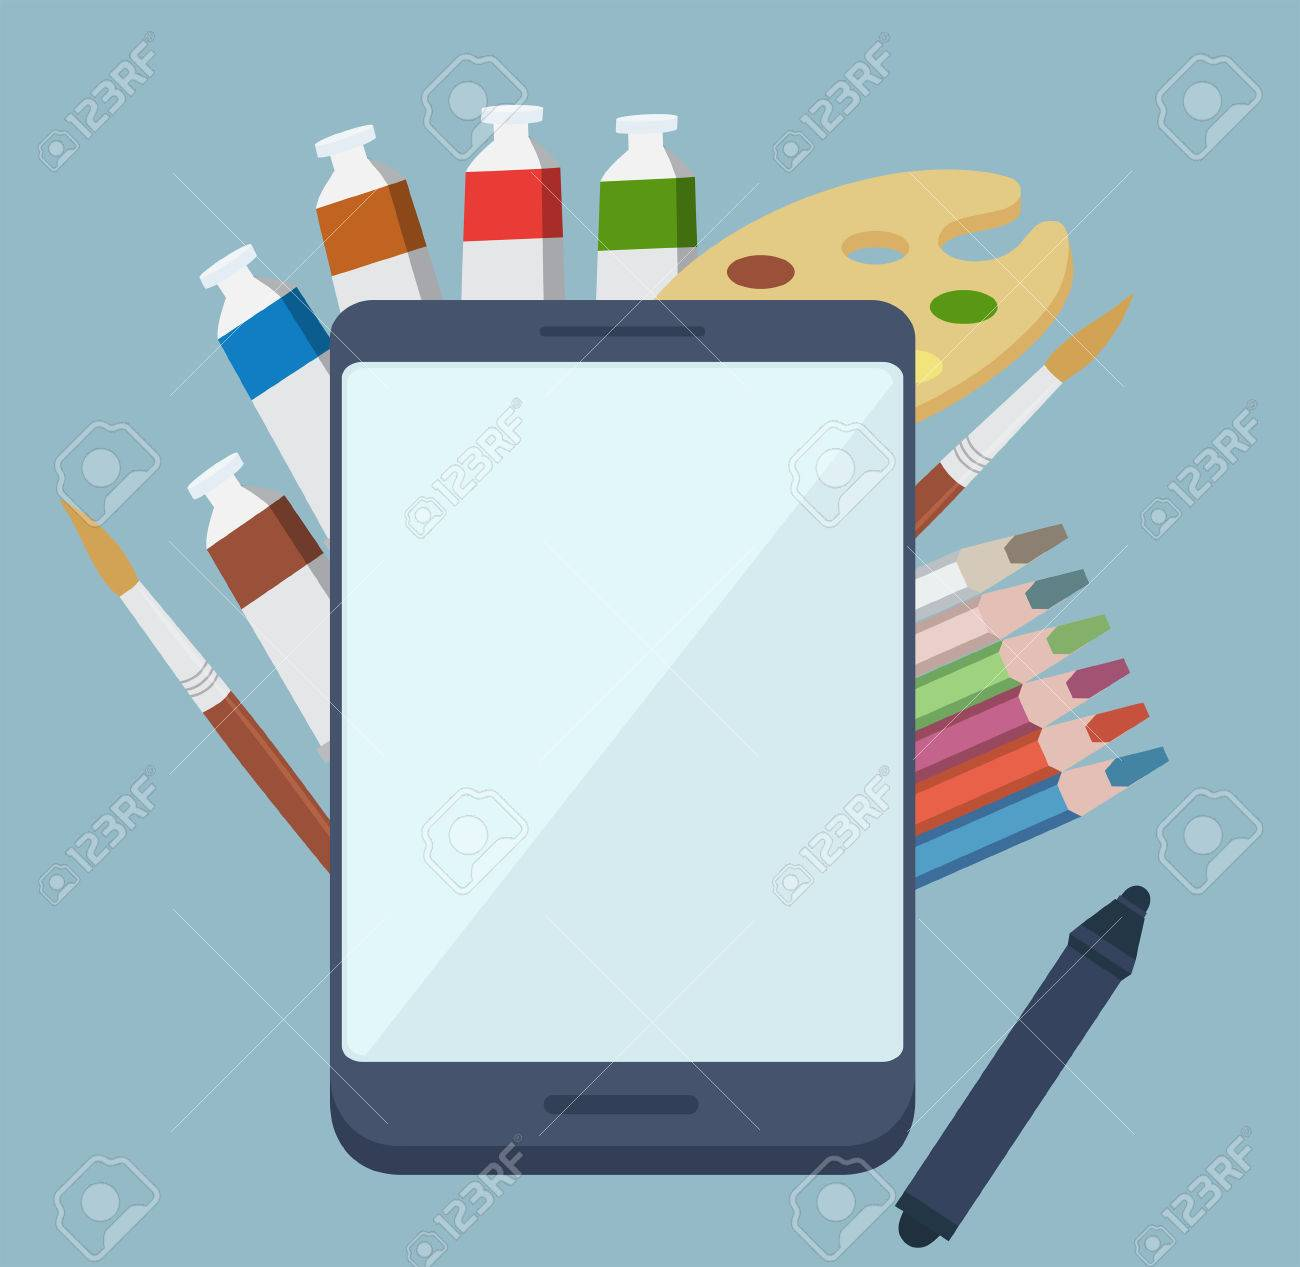 Digital painting app concept with colorful tubes of paint, paintbrushes and a wooden artists palette surrounding a tablet-pc with a blank white screen and copyspace, vector illustration Stock Vector - 48104805